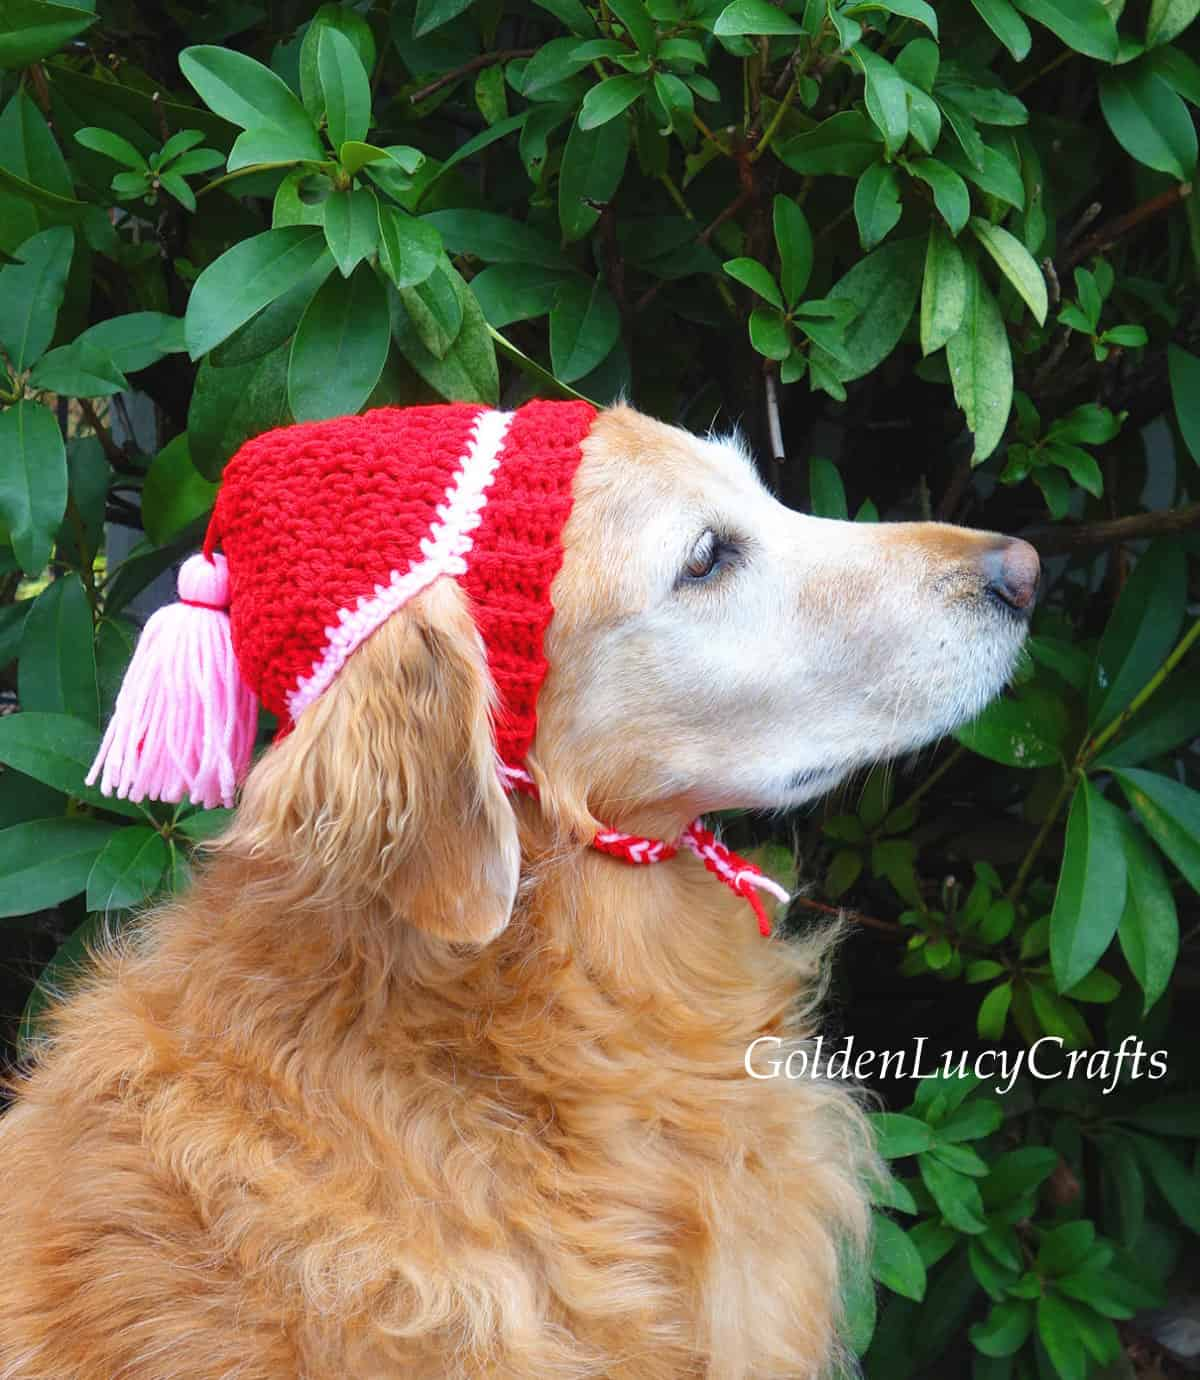 Golden retriever wearing red crocheted hat - view from the side.